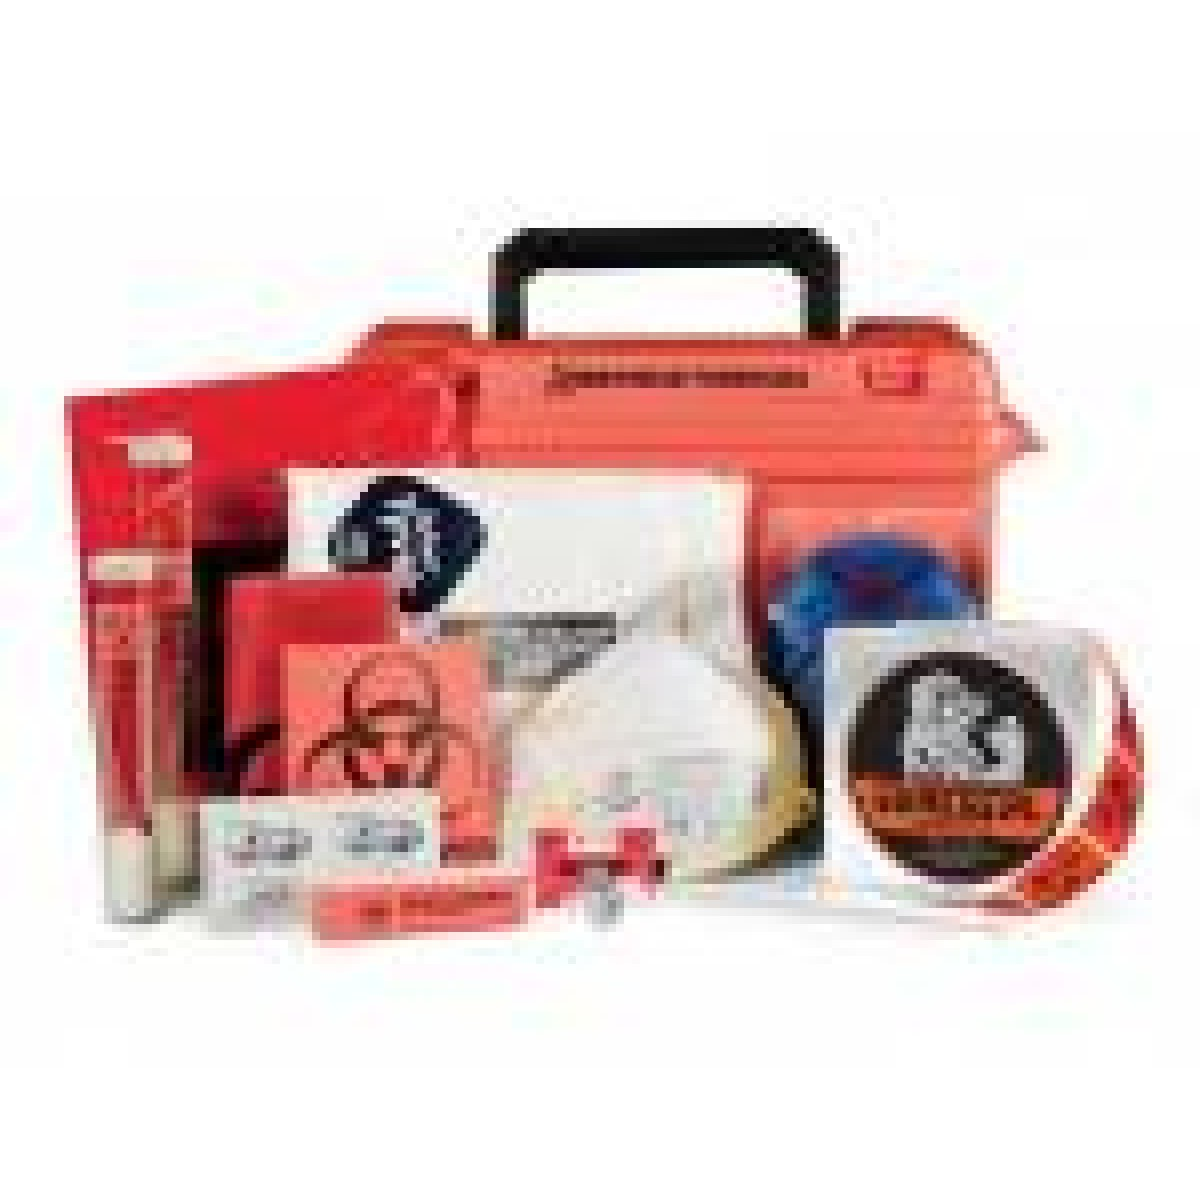 Shop Now Master Biohazard Kit Specialized Forensic Kits Forensics